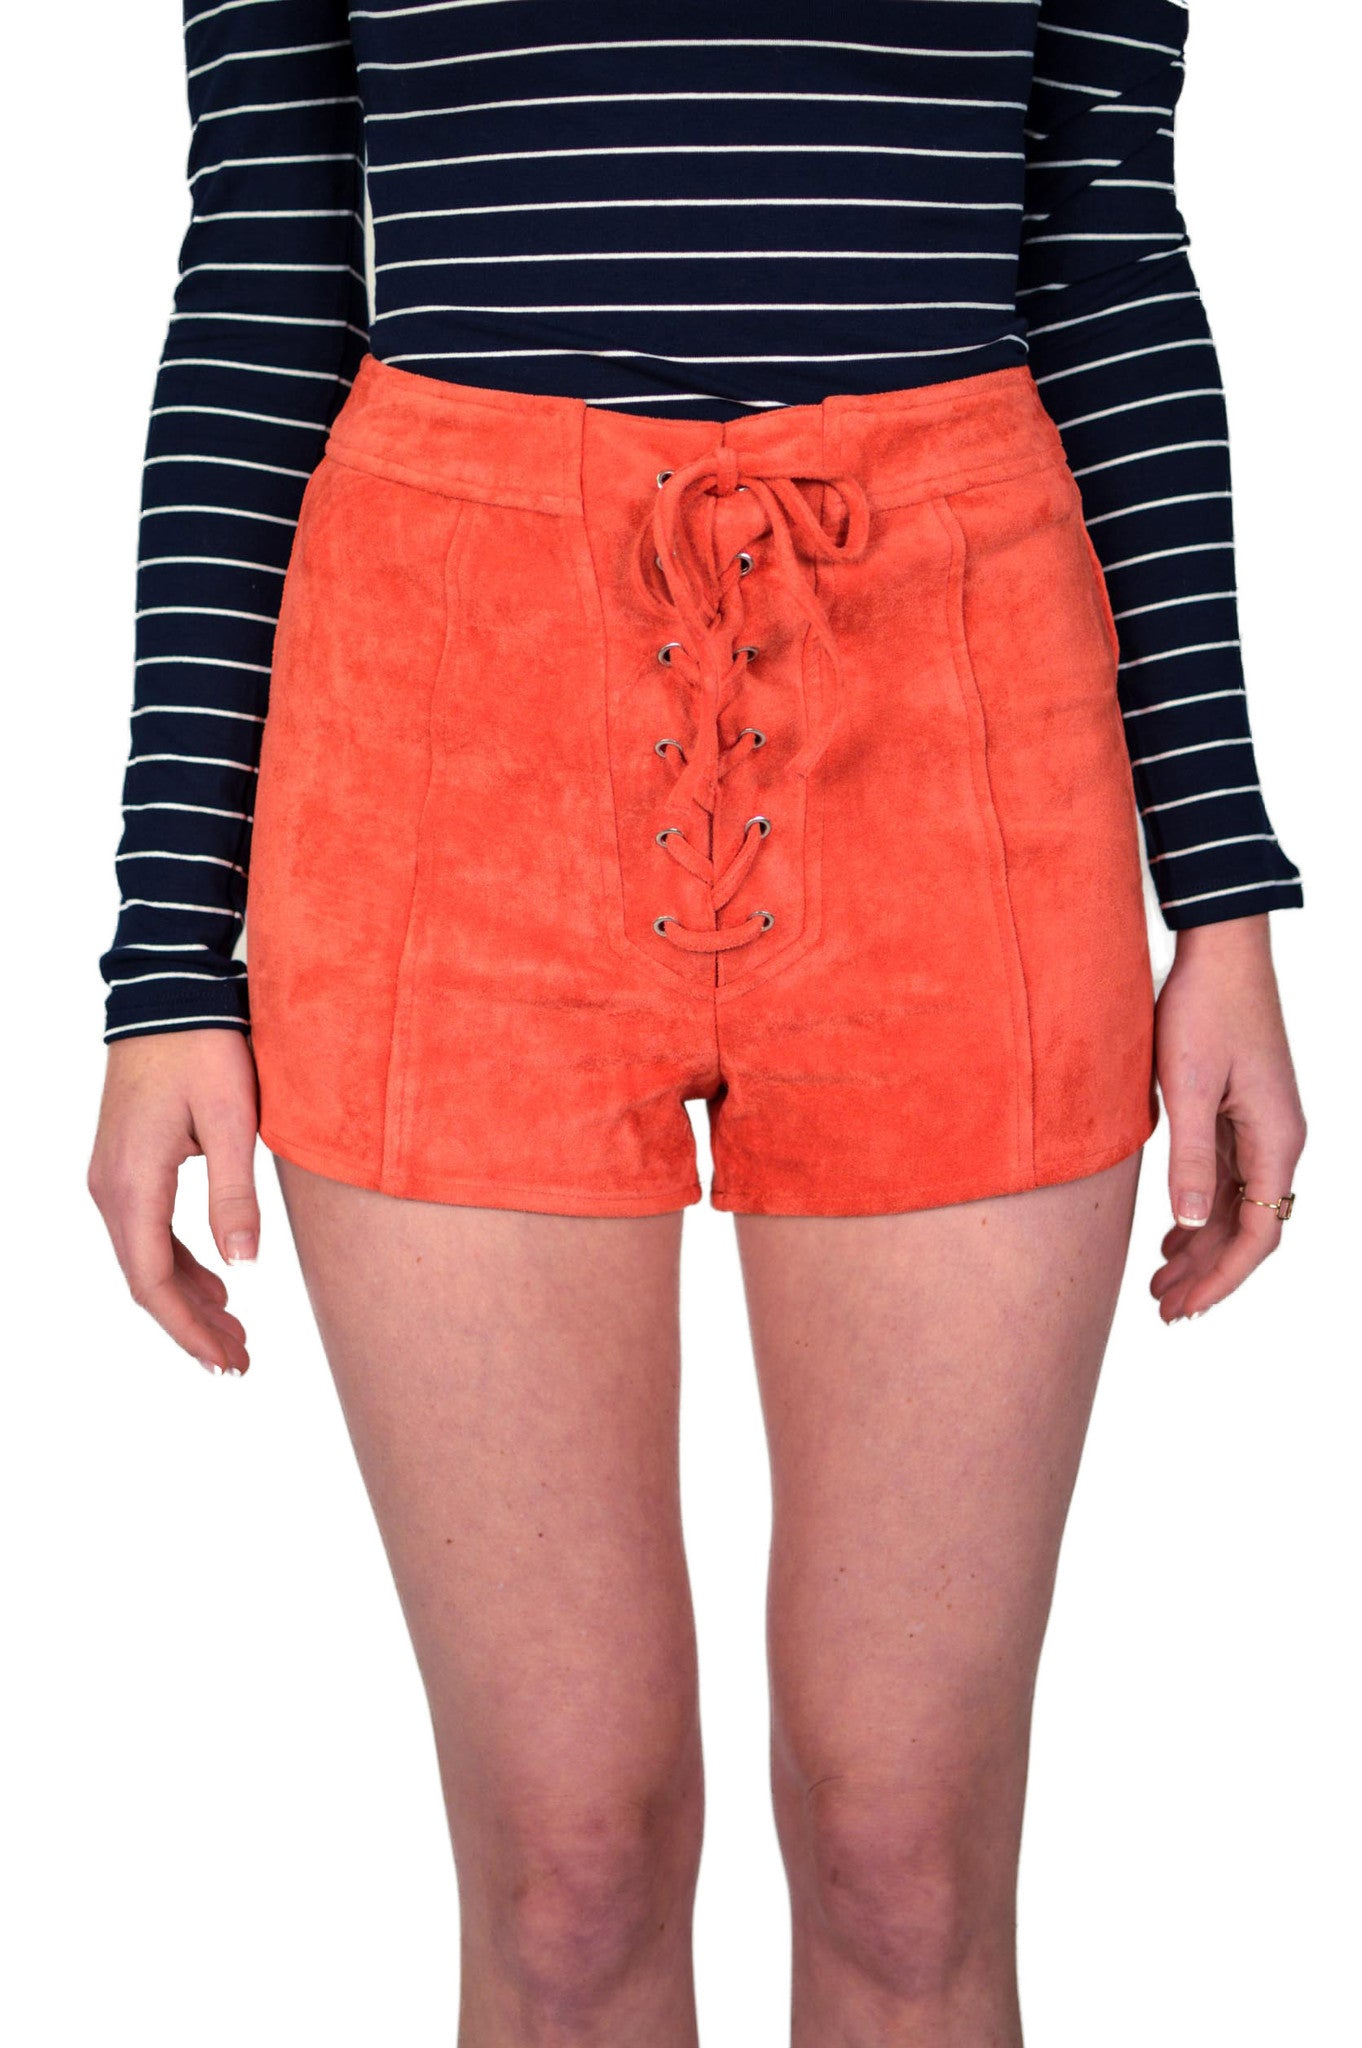 Mink Pink Tied Up Lace Front Shorts